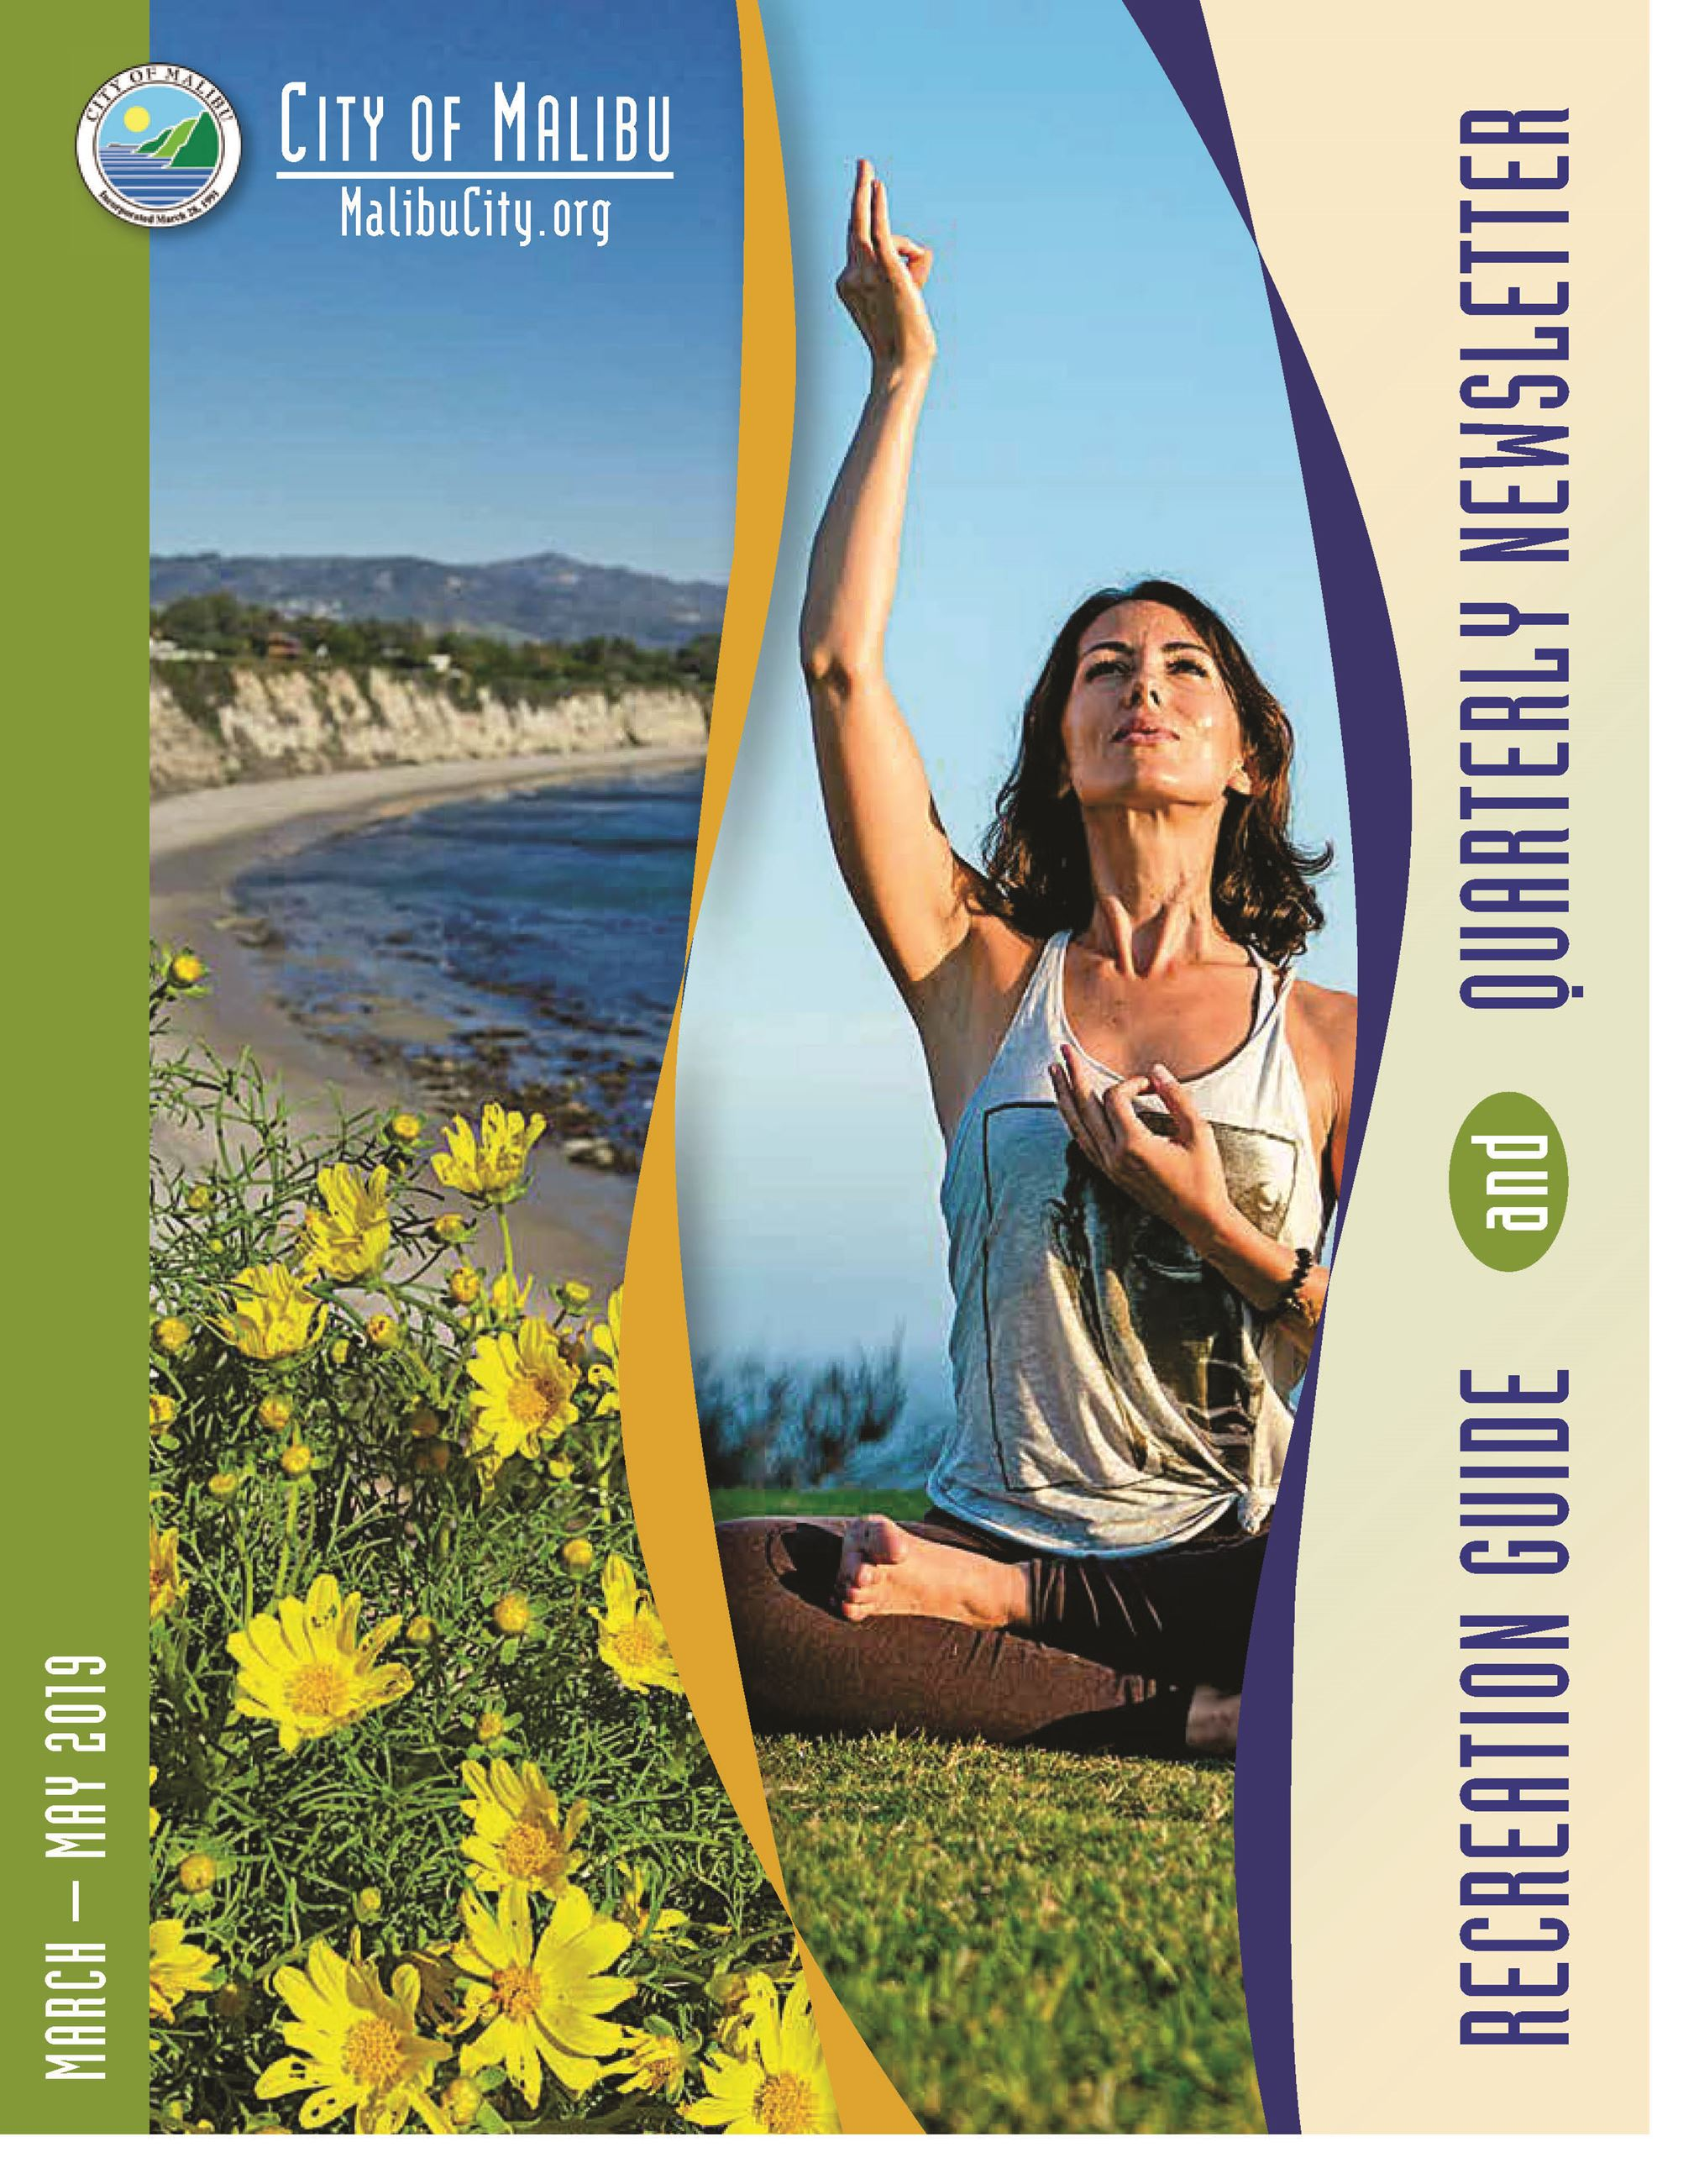 Spring 2019 Recreation Guide Cover Yoga Teacher and Point Dume Scenic